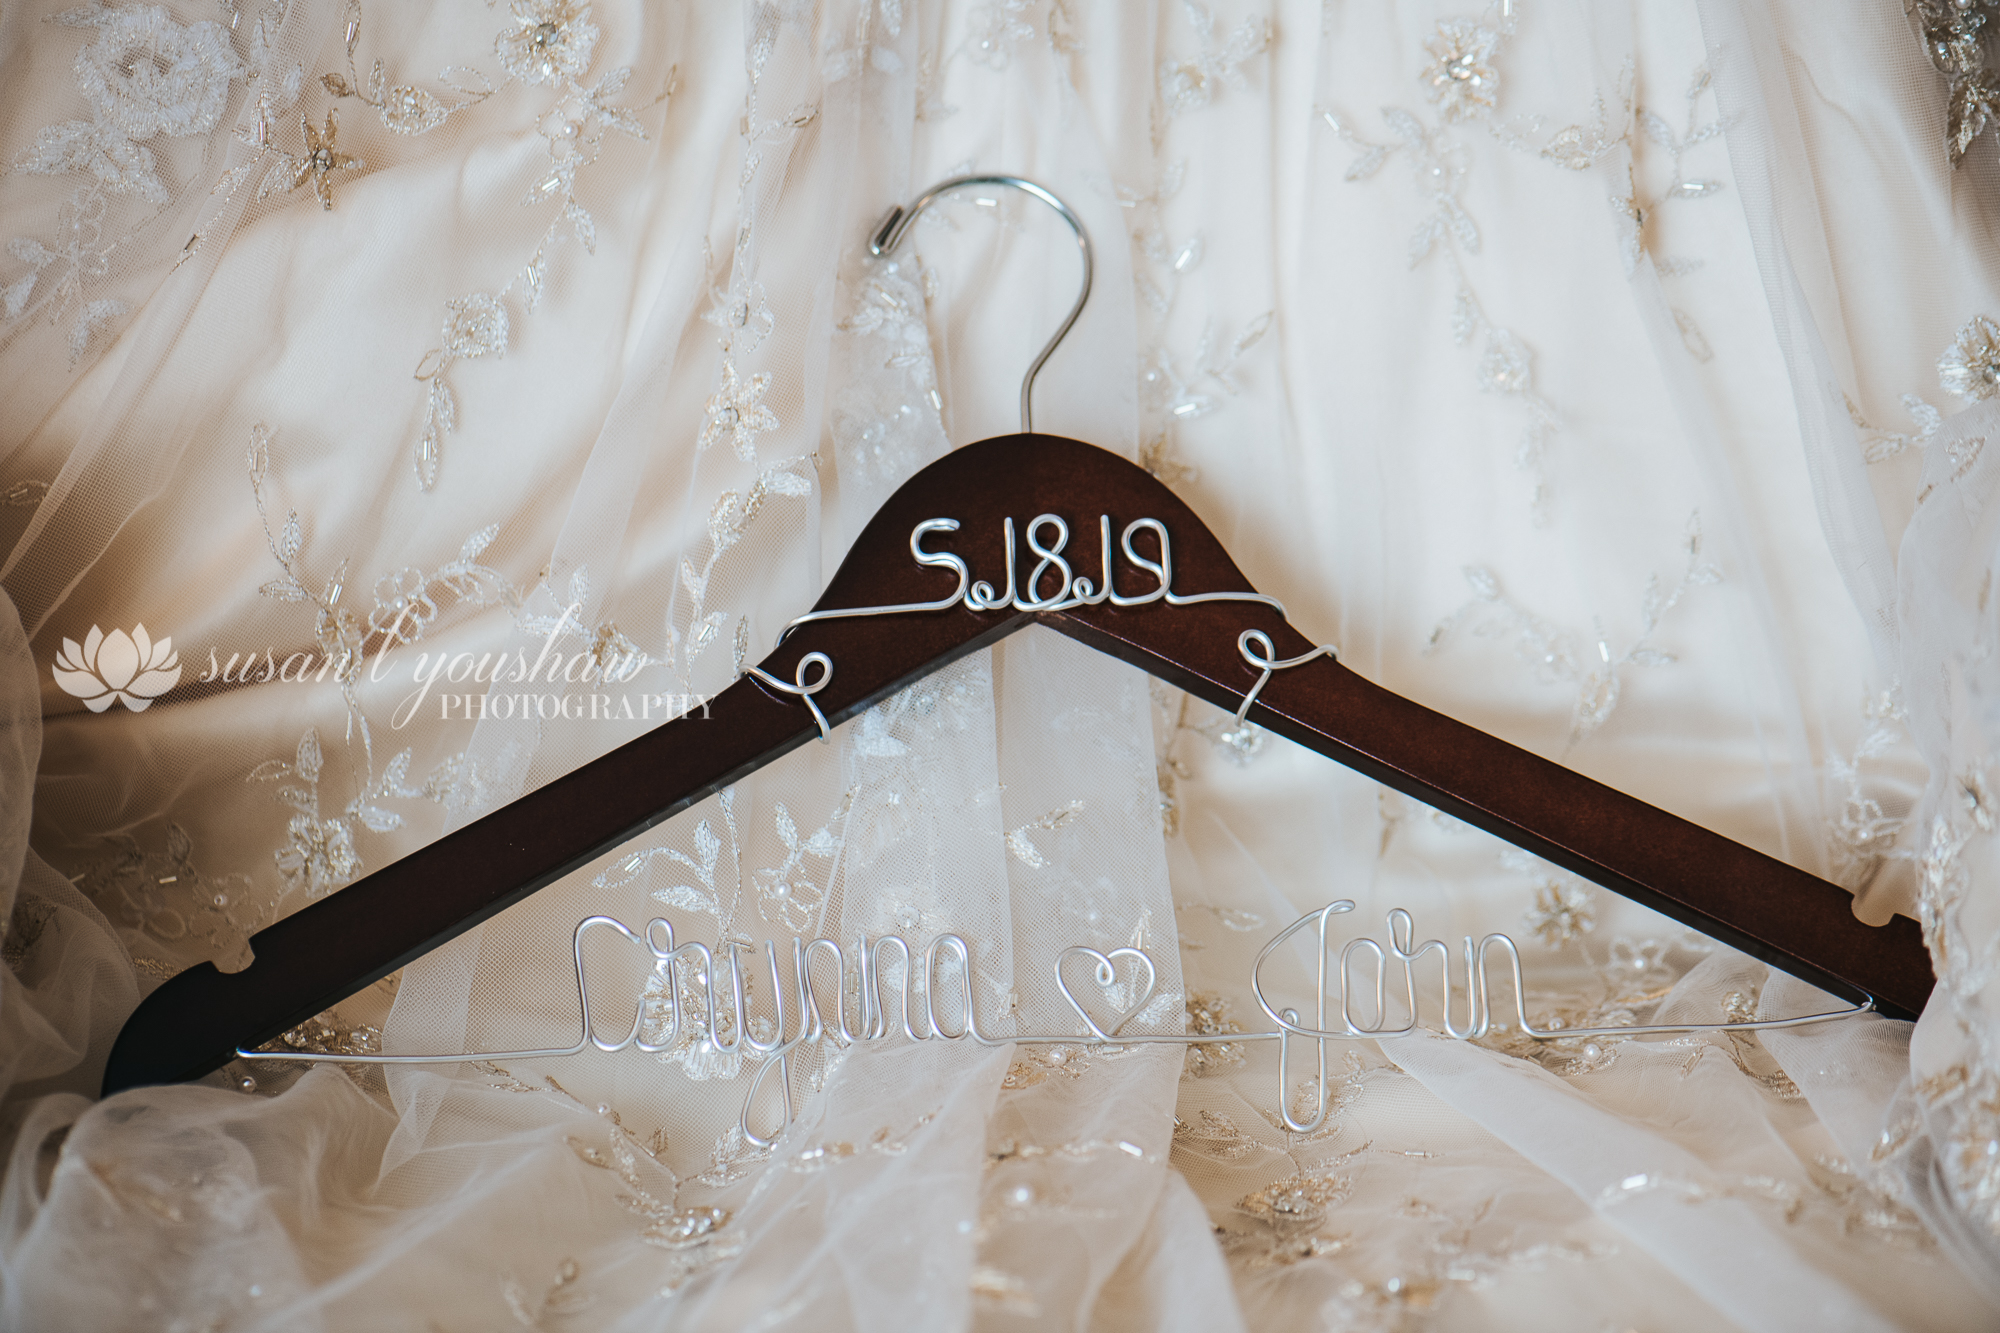 Chynna and John Wedding 05-18-2019 SLY Photography-6.jpg